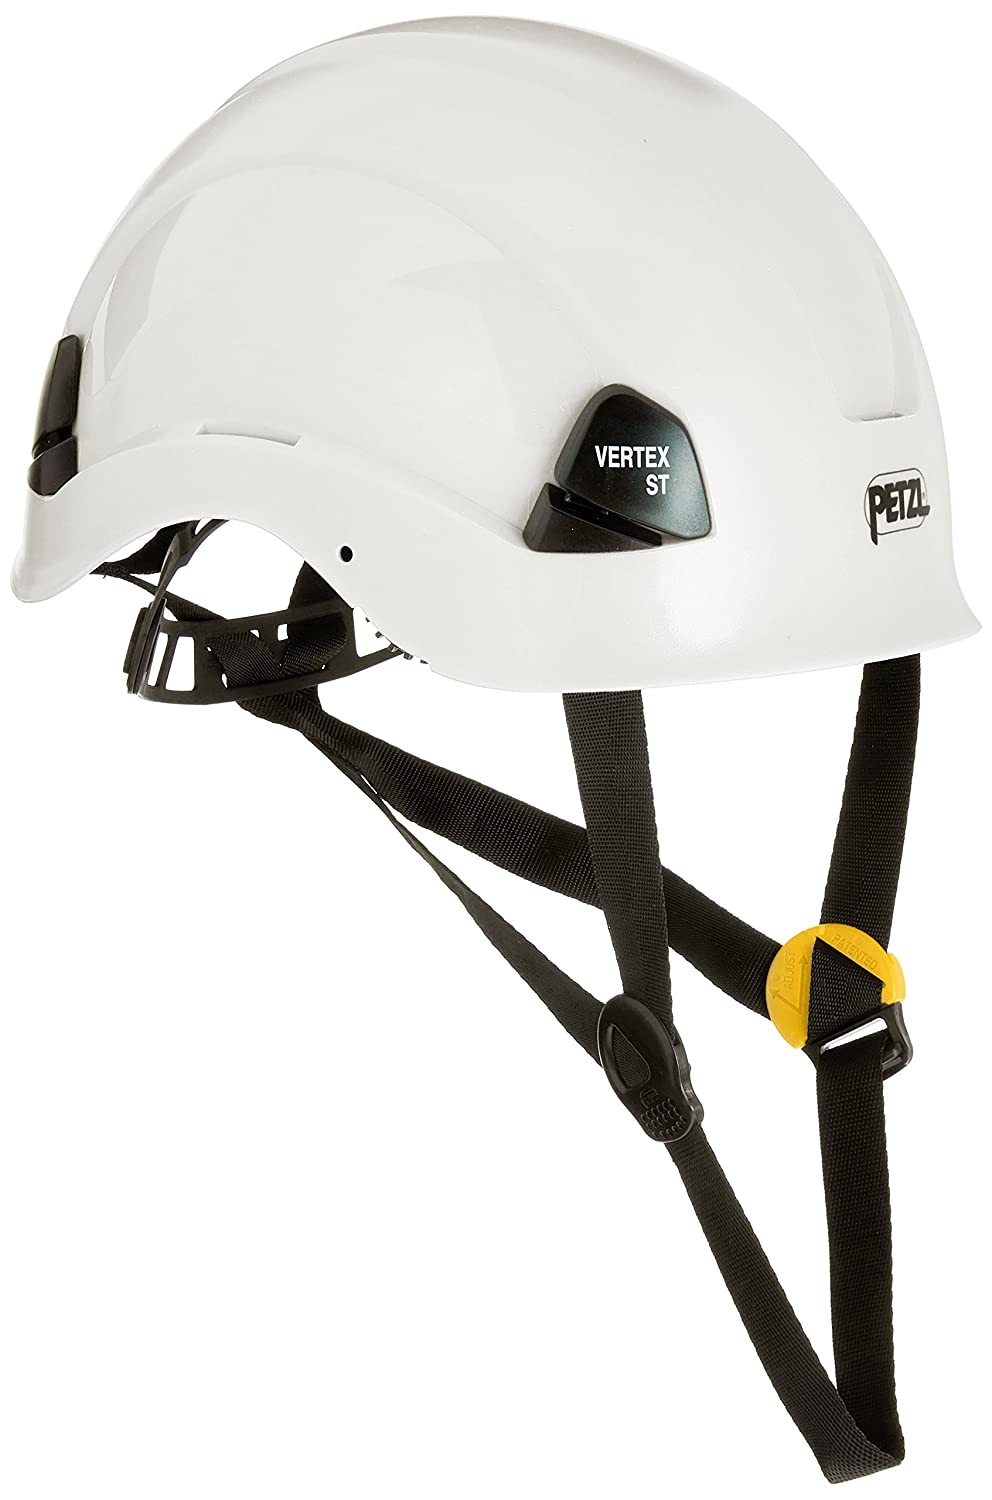 Petzl A10SWA VERTEX ST Comfortable Helmet for Industry, White Petzl Company